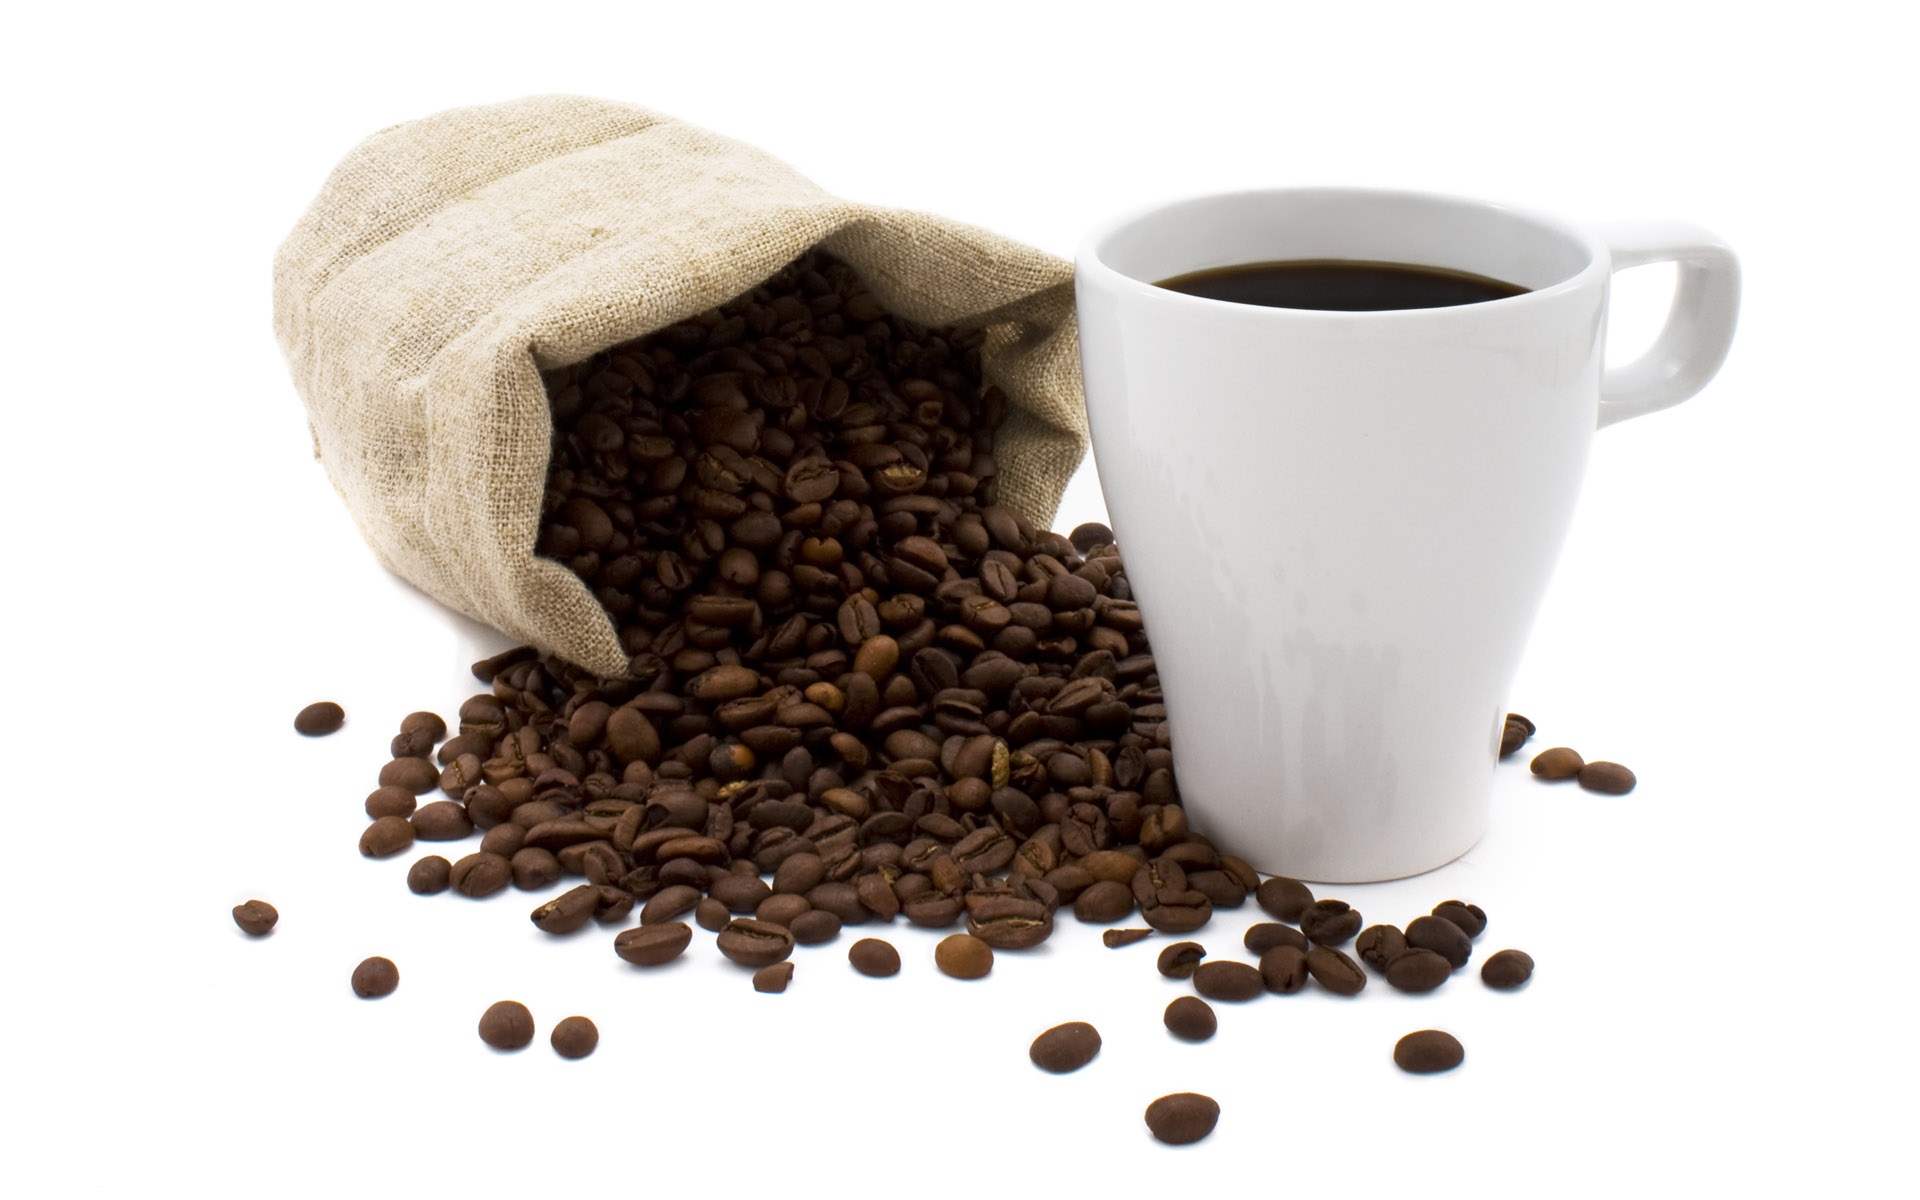 Coffee and coffee beans close-up 16552